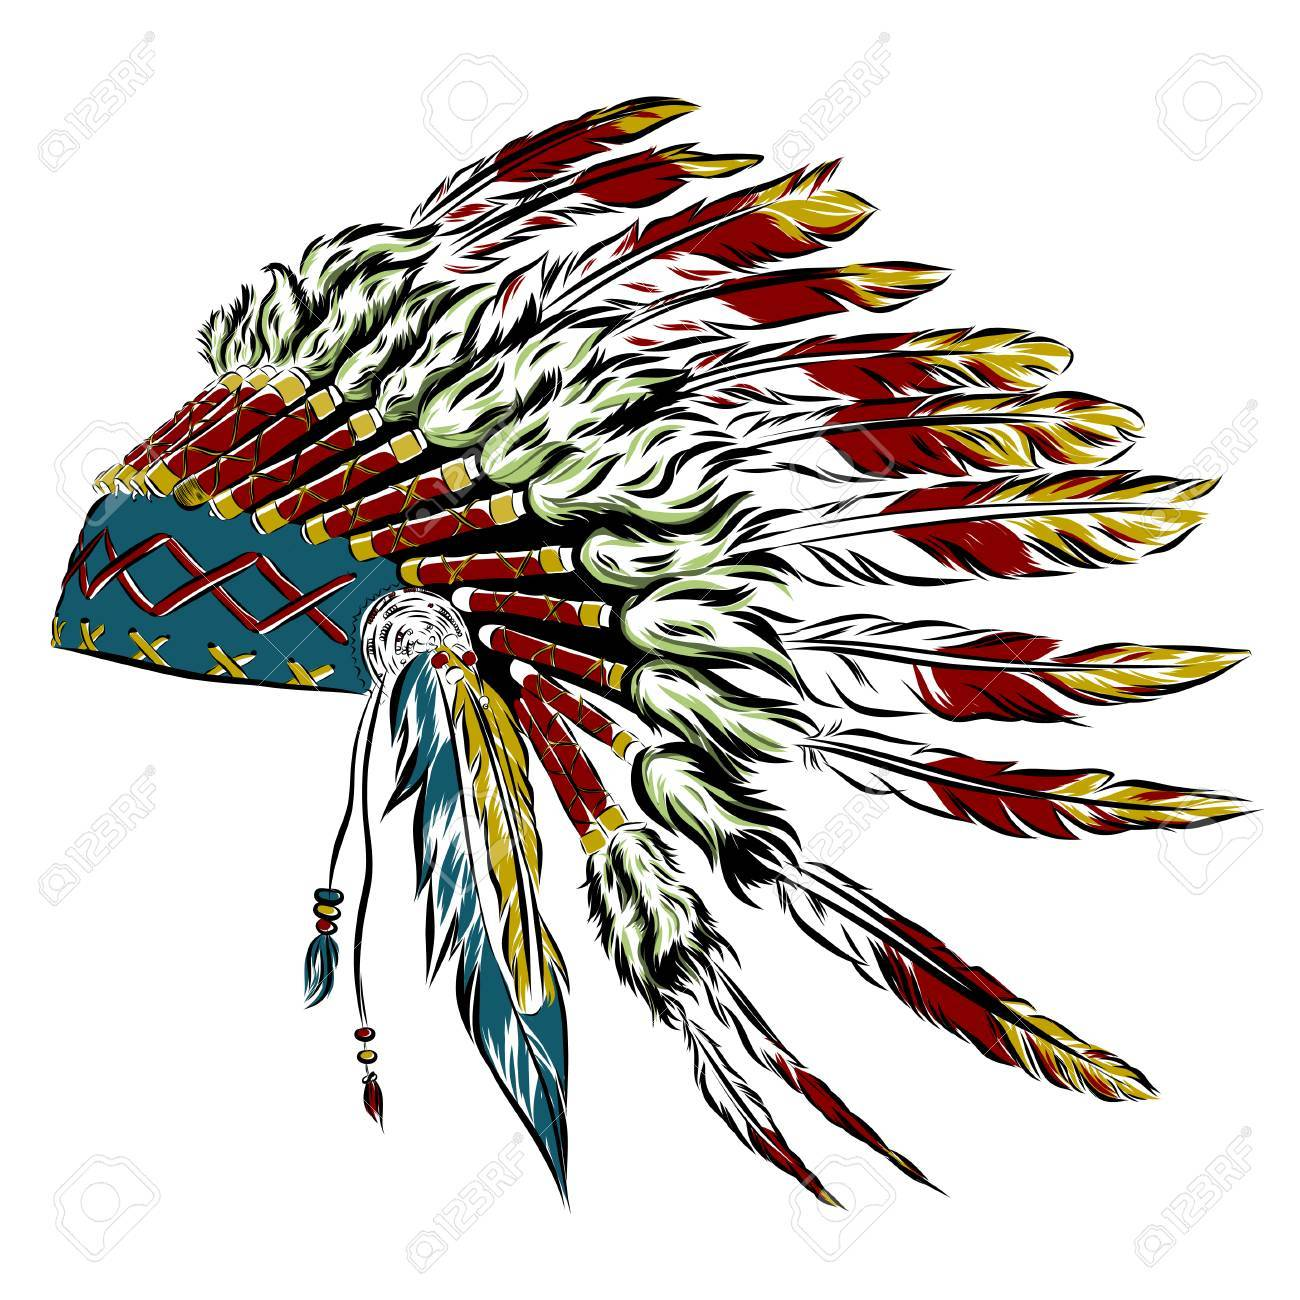 Native American indian headdress with feathers in a sketch style.